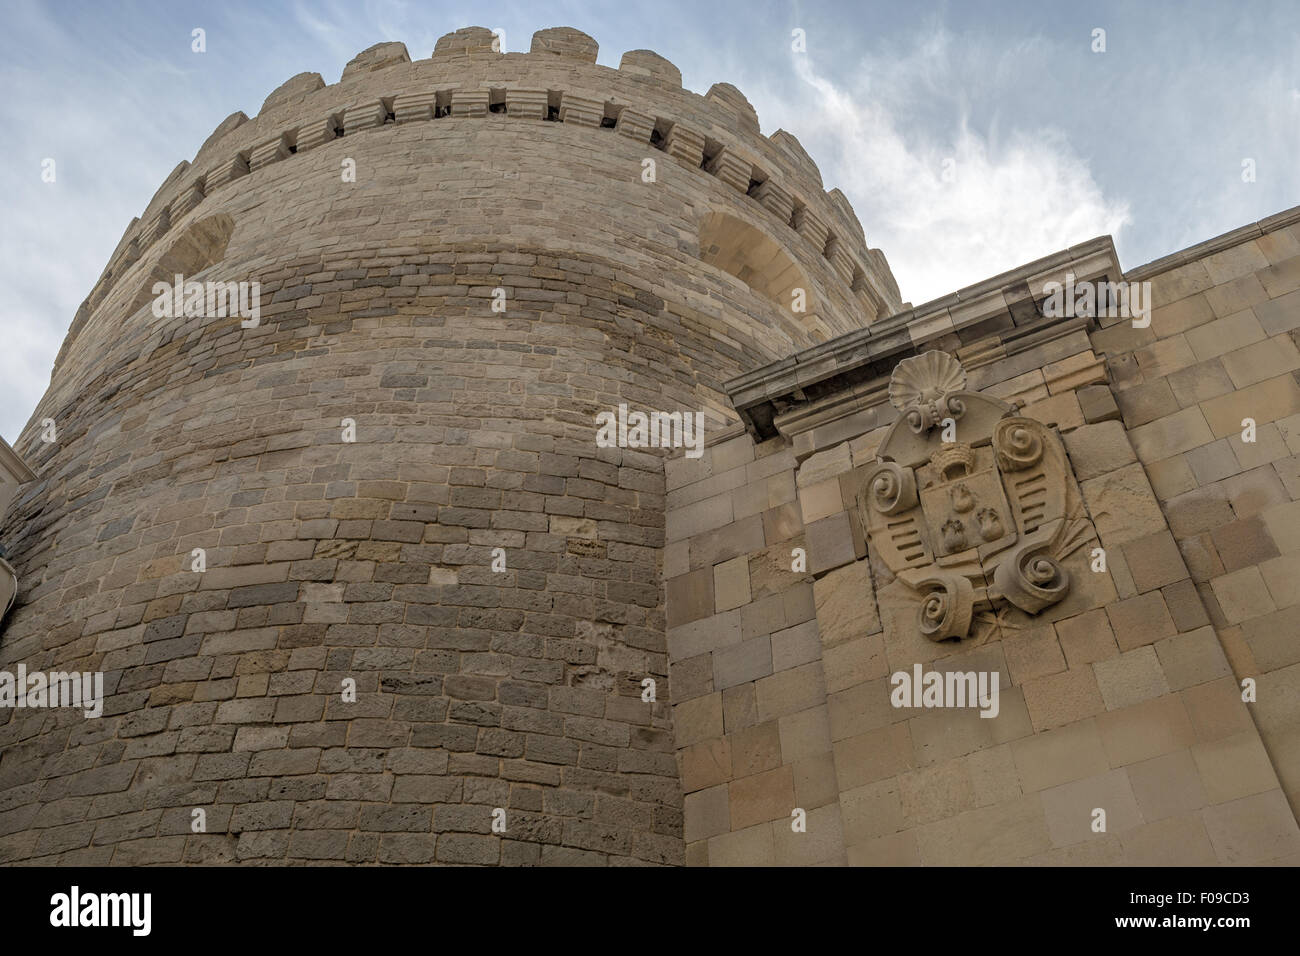 Old City (Icheri Sheher) wall and emblem of Baku, Baku Azerbaijan Stock Photo